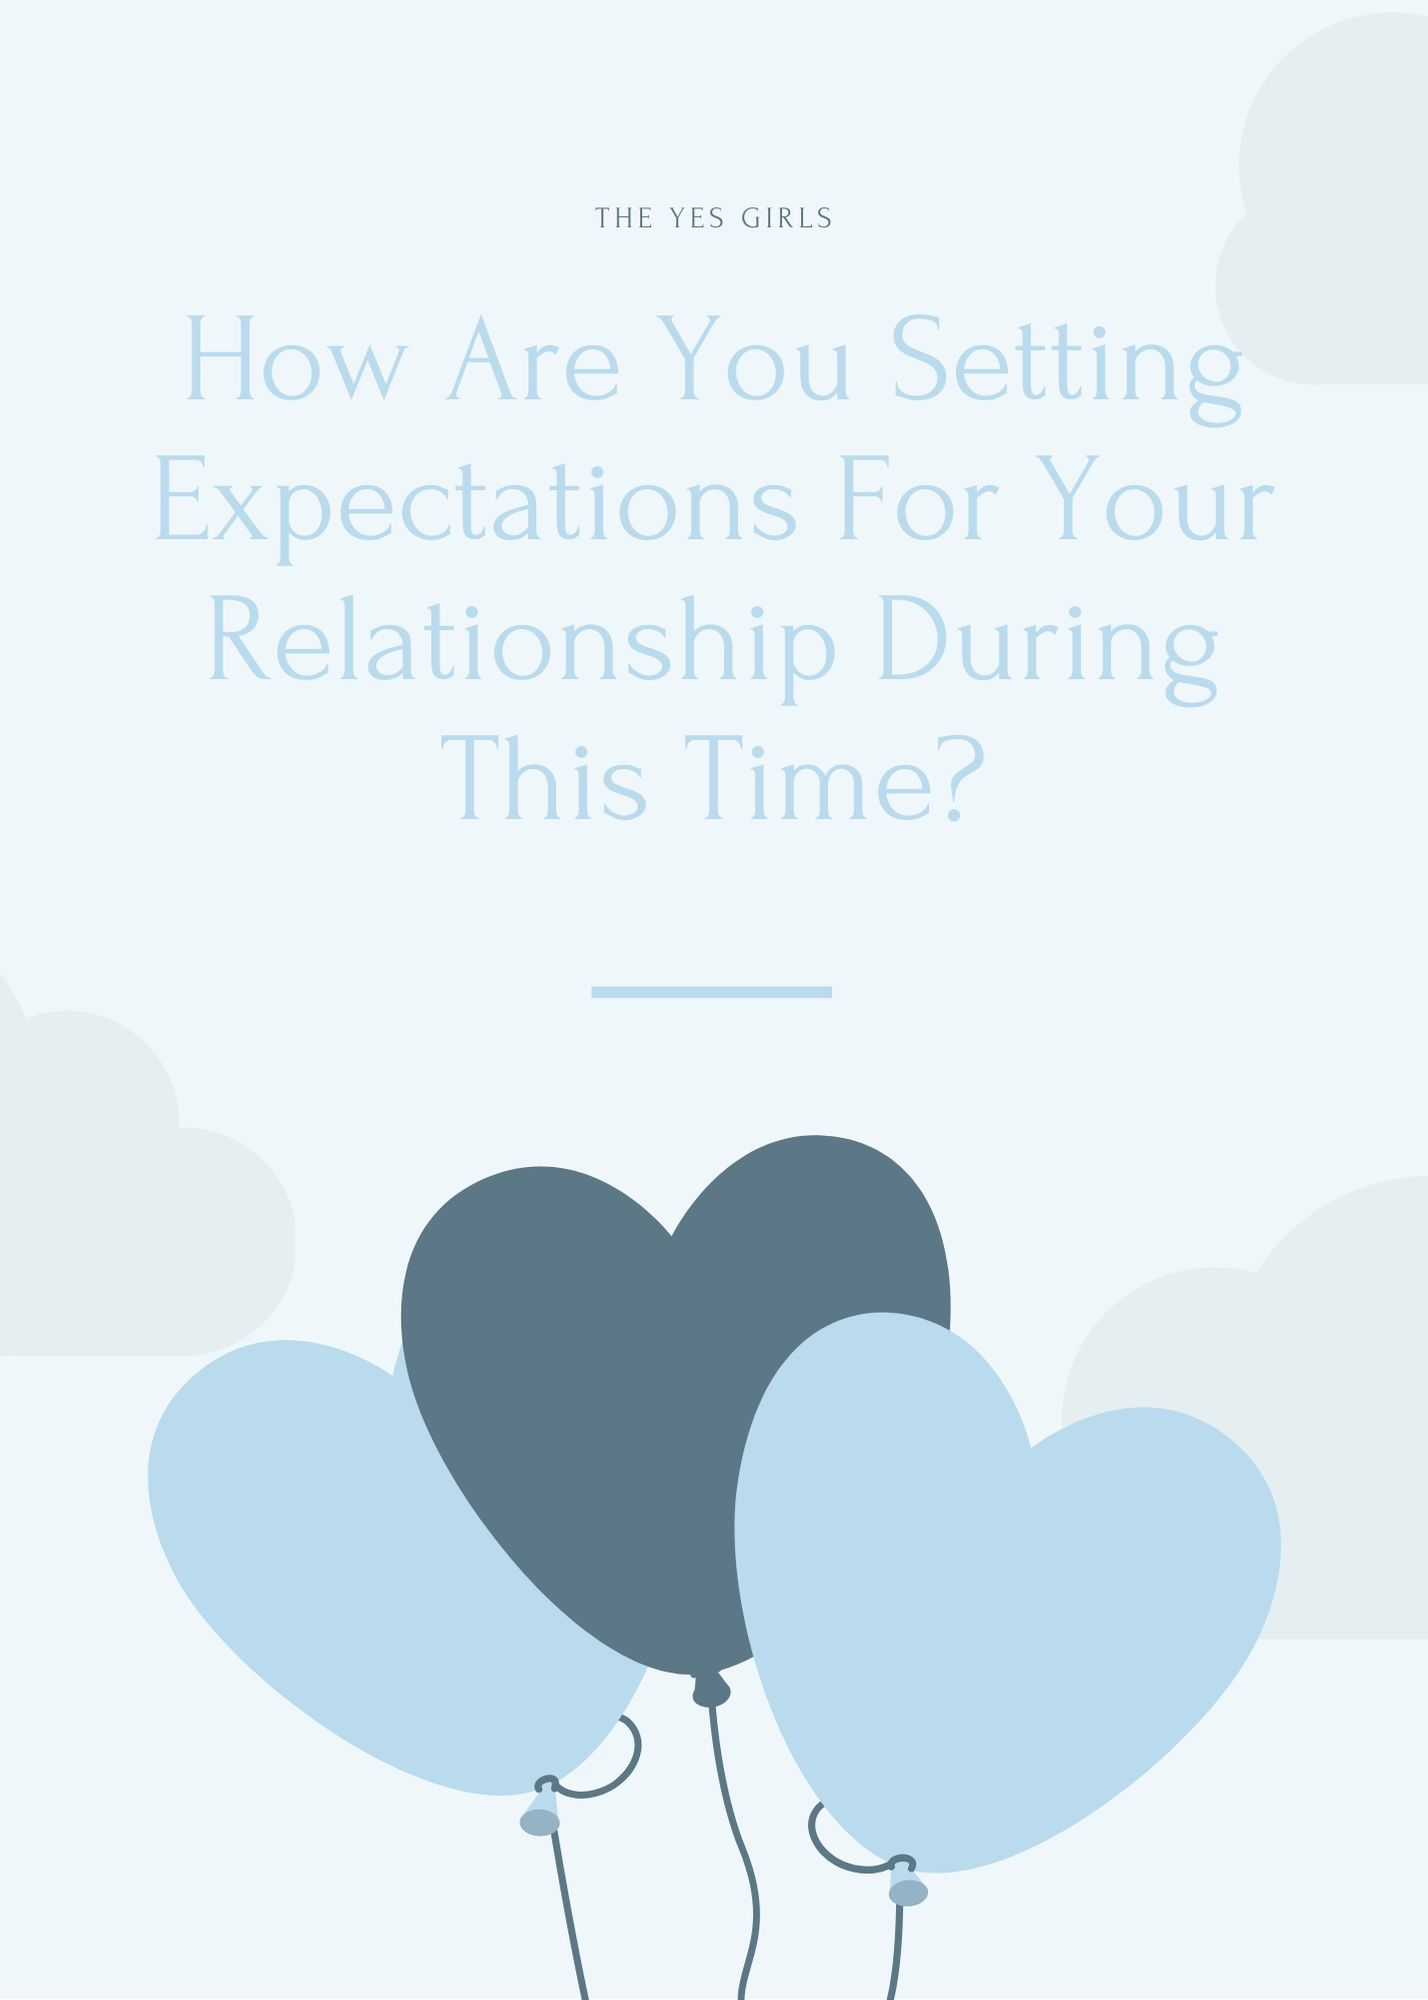 How Are You Setting Expectations For Your Relationship During This Time?